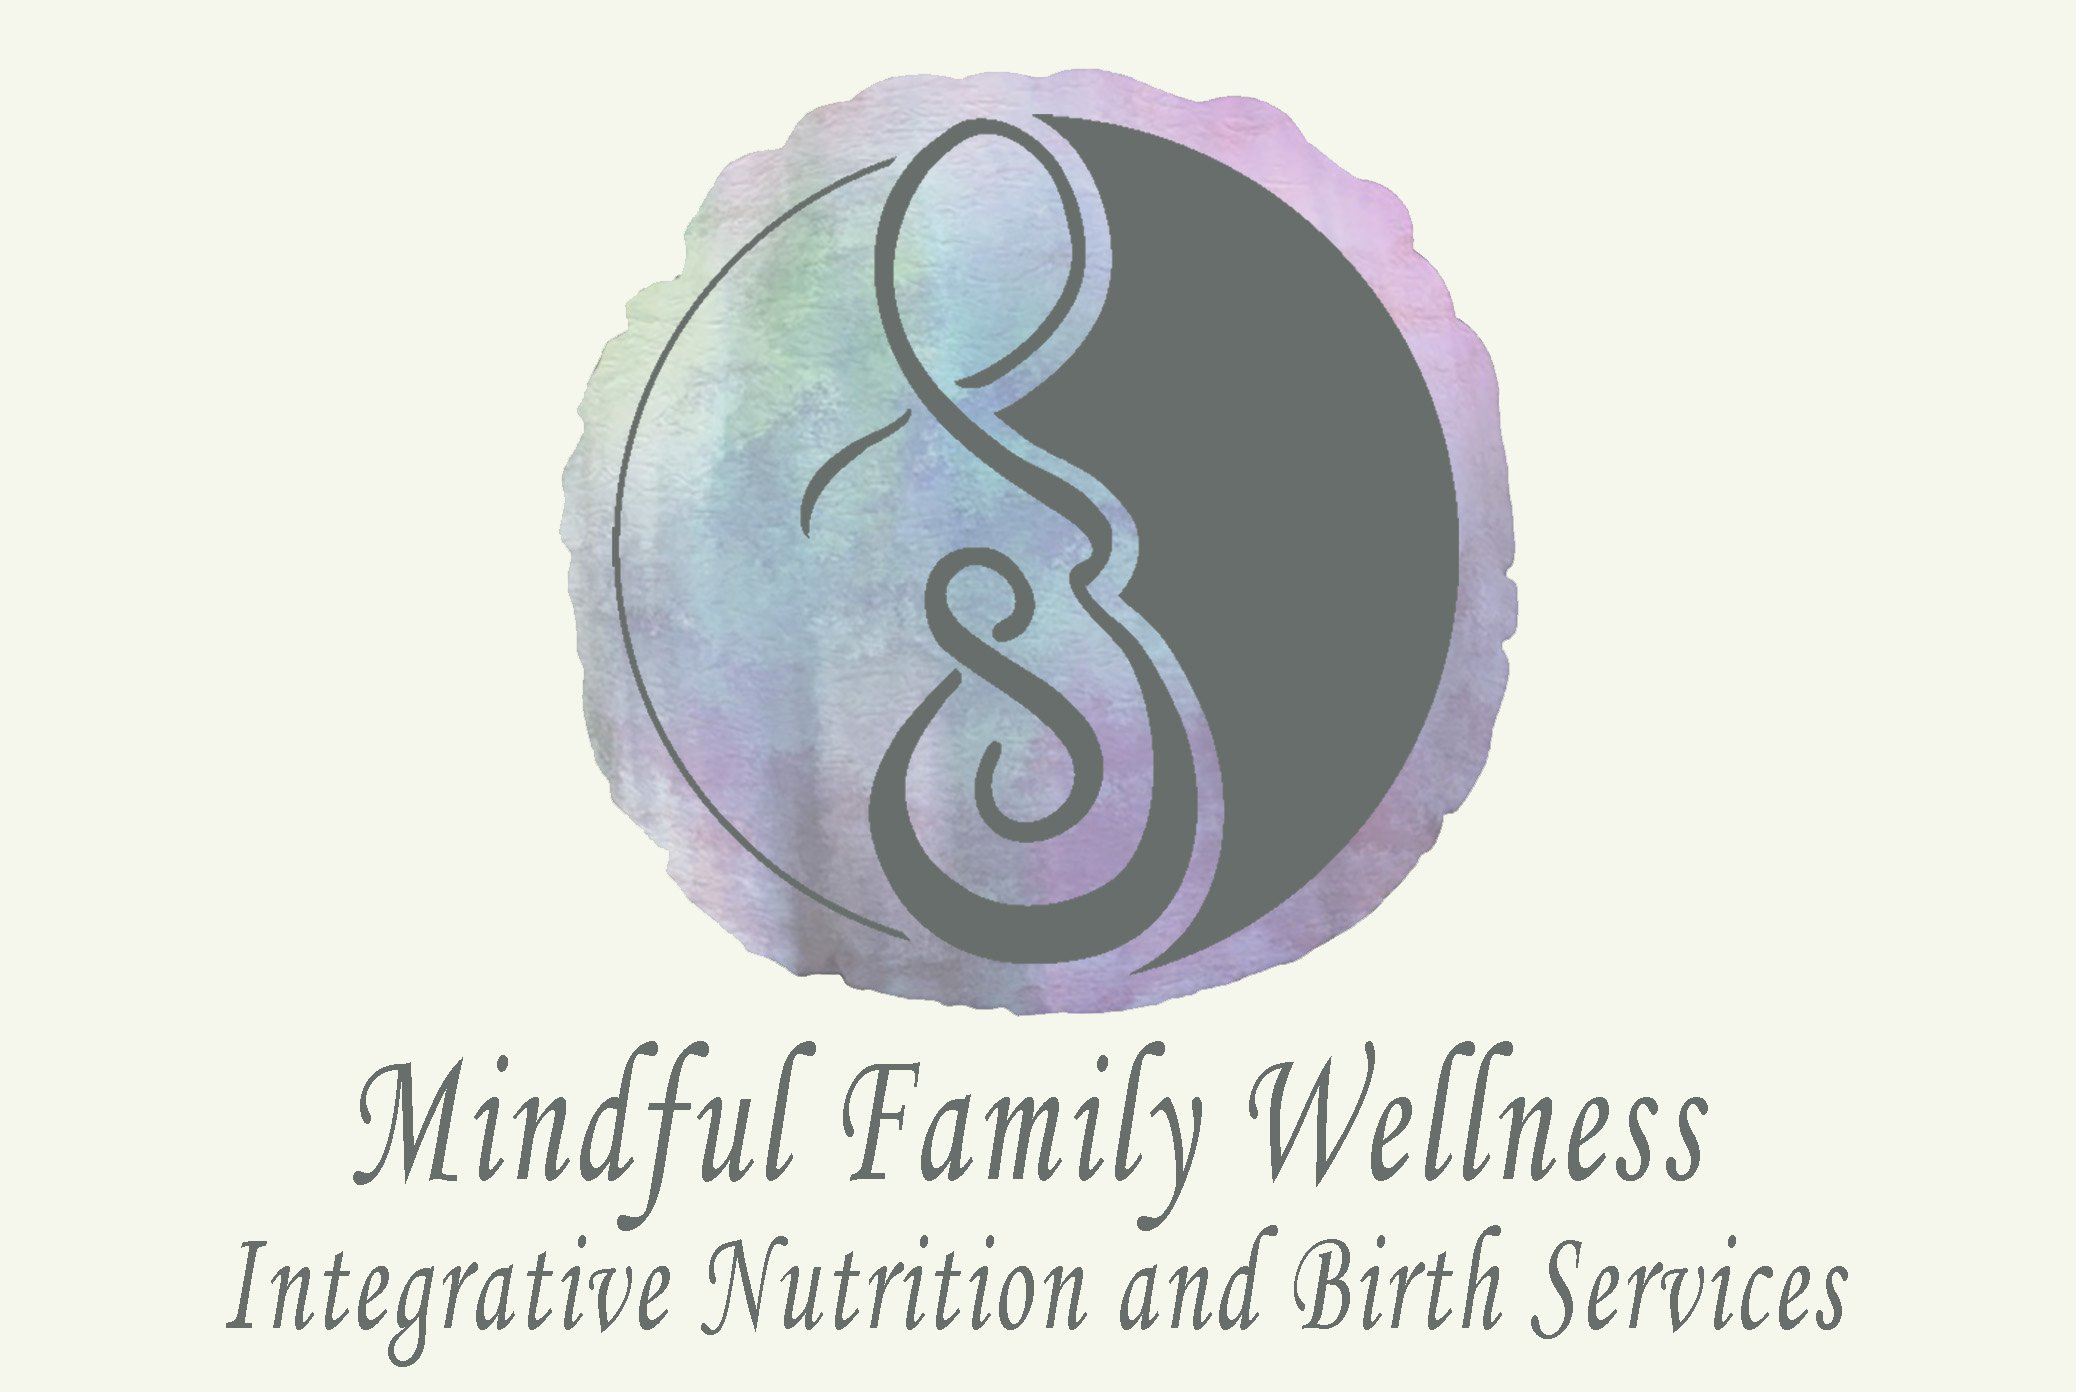 Mindful Family Wellness